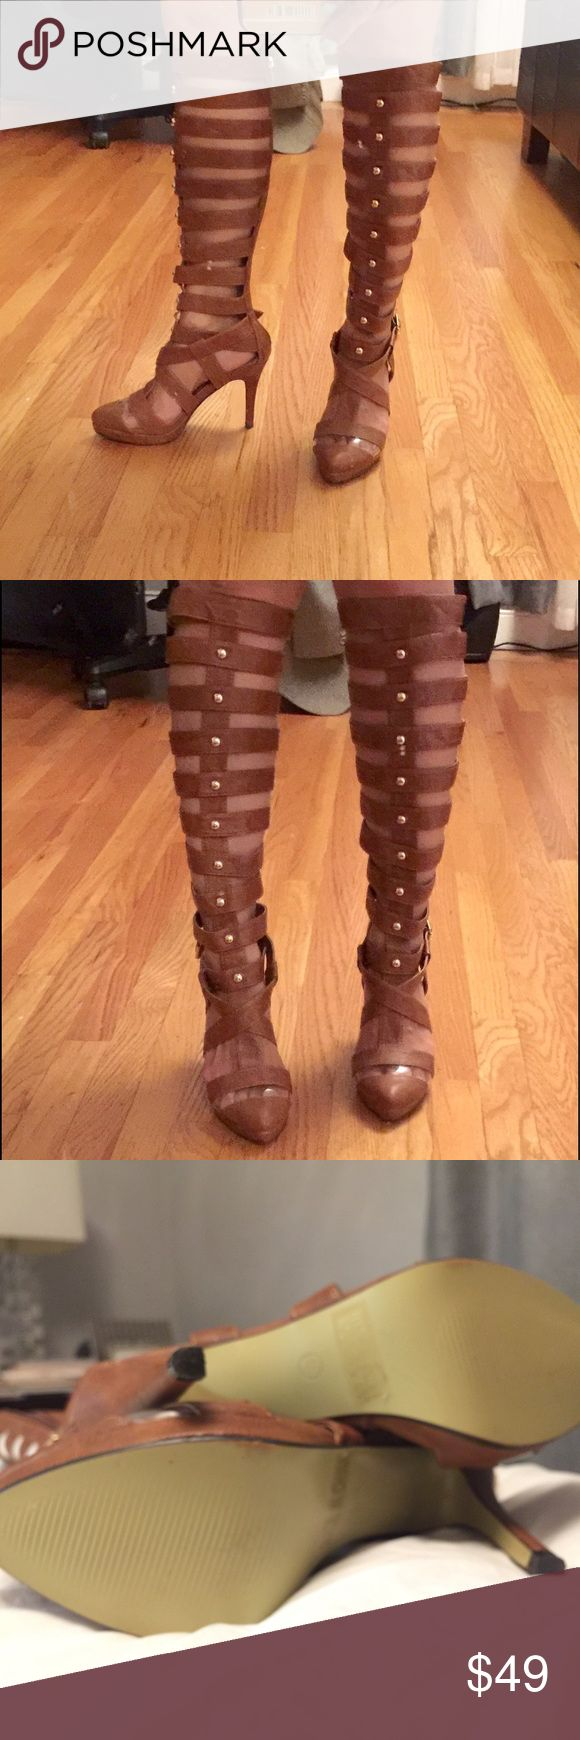 Super cool gladiator boots size 6.5 Excellent used condition no flaws. True to size 6.5 average width. Perfect for summer! Urban OG Shoes Heeled Boots